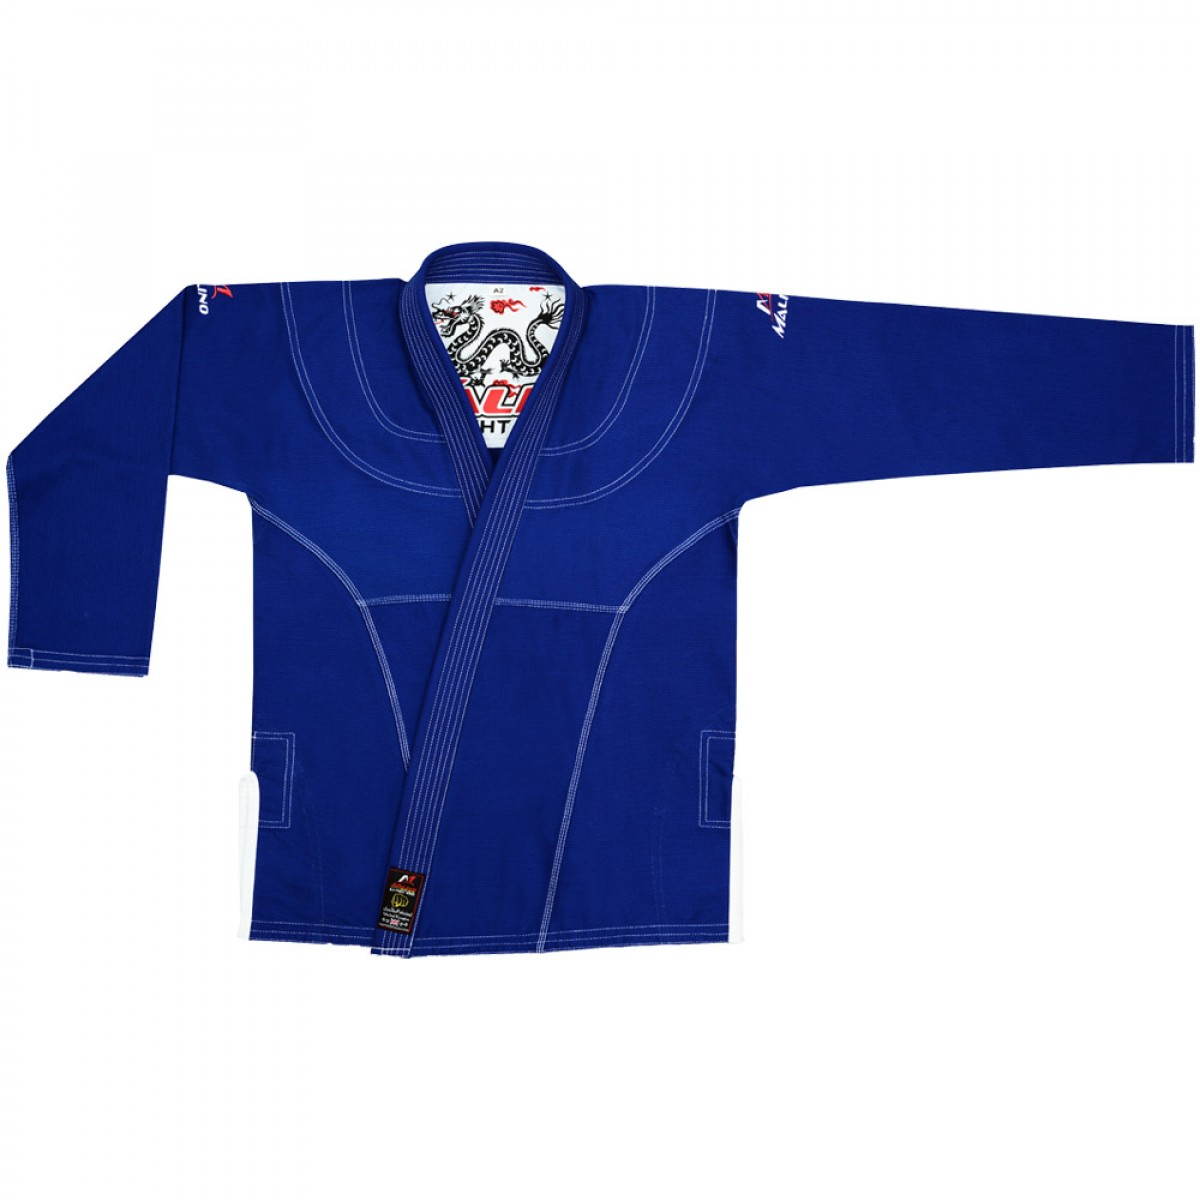 Malino BJJ Gi Bull Dragon Blue Pearl Weave Cotton 350Gsm